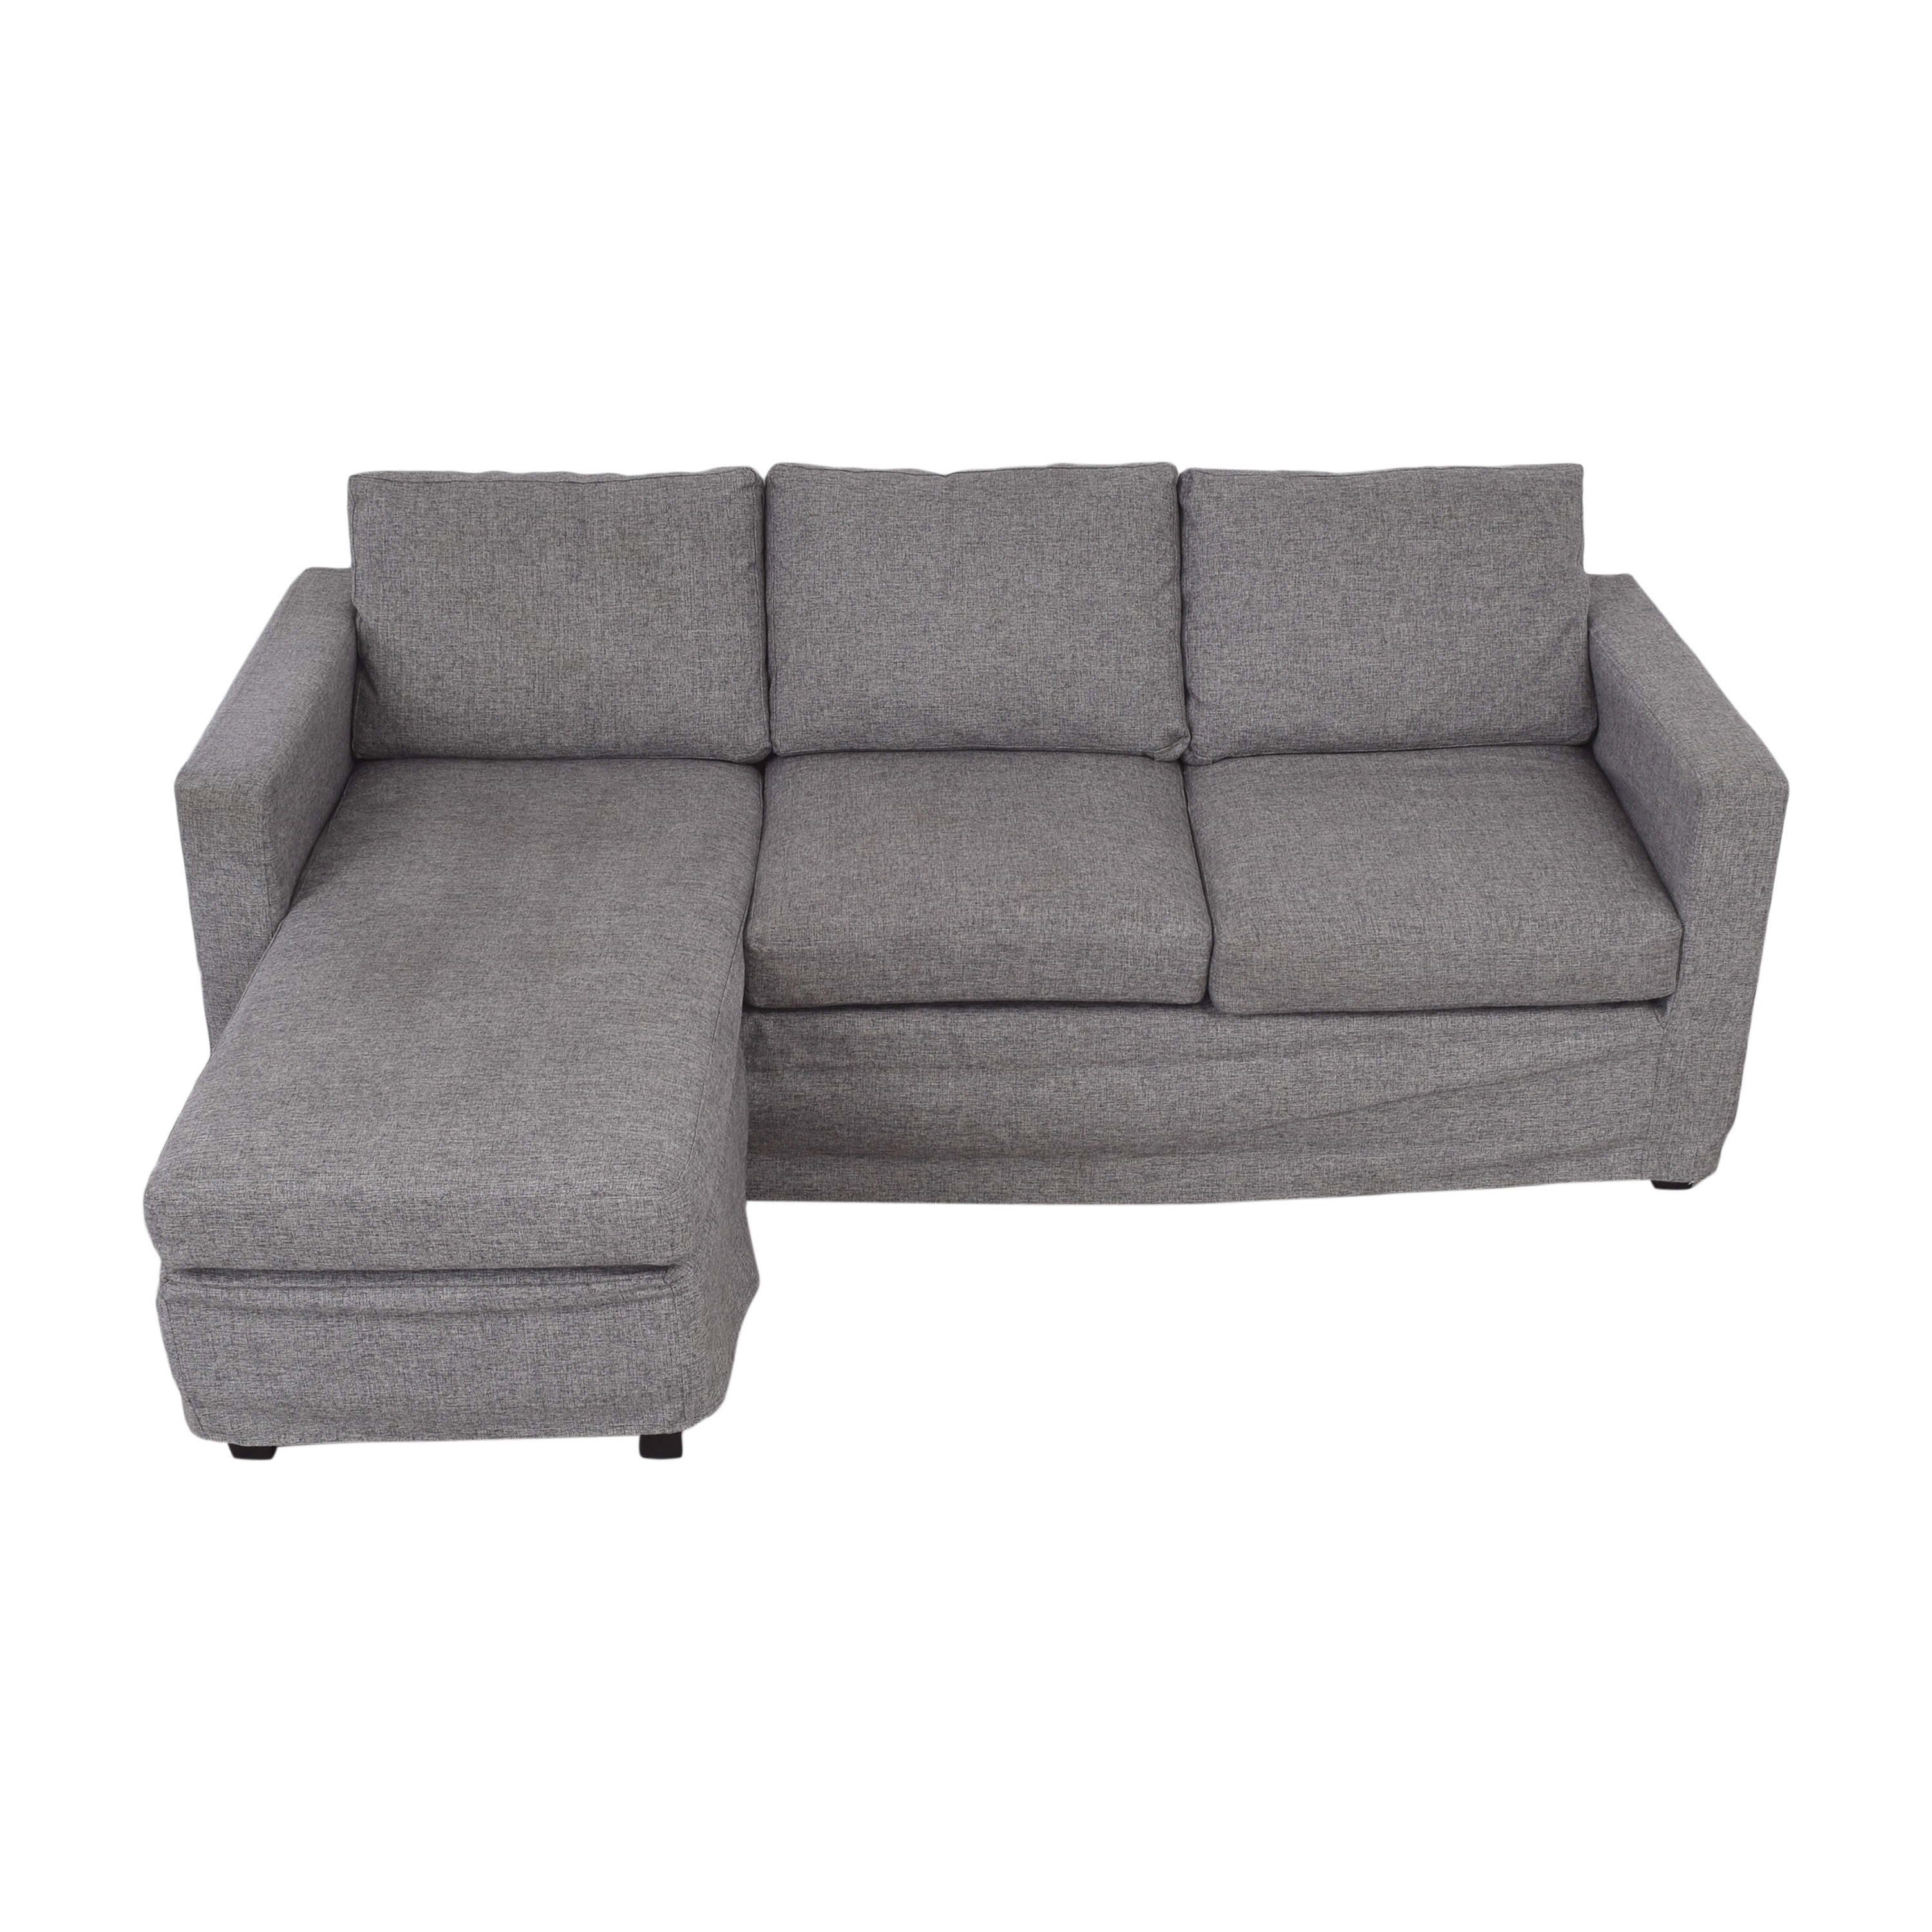 Andover Mills Andover Mills Chaise Reversible Sectional Sofa